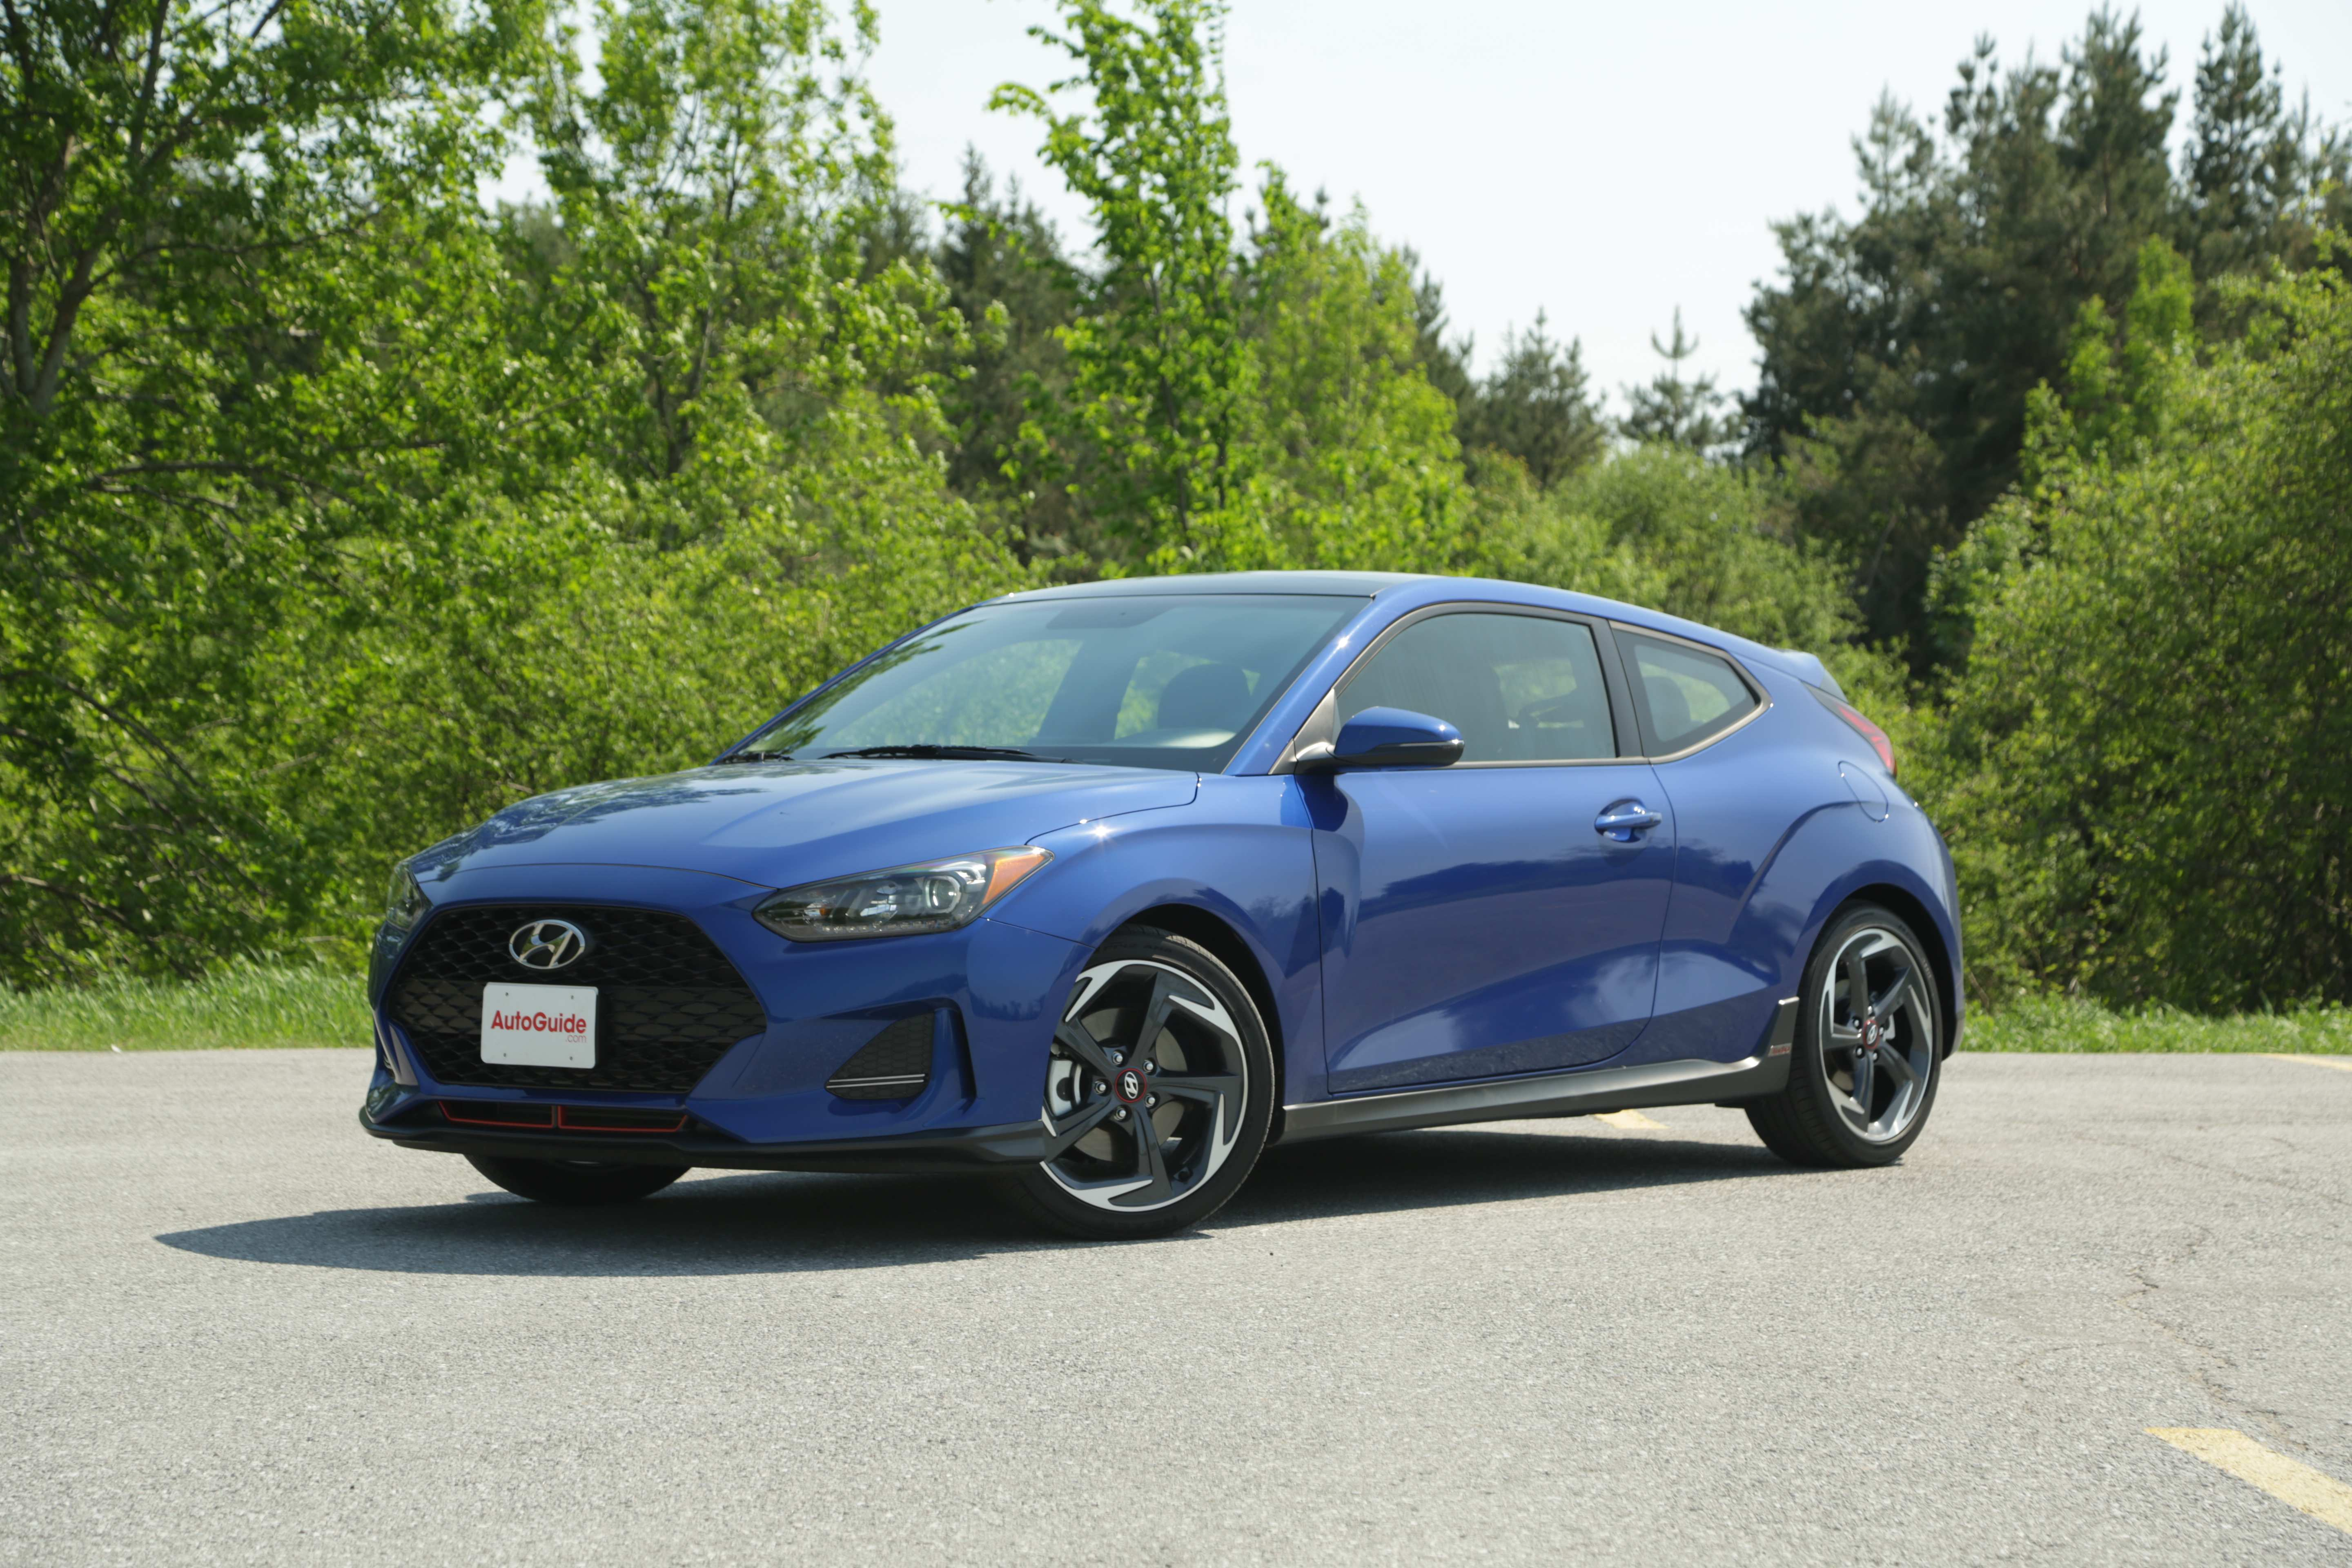 73 All New 2019 Hyundai Veloster Turbo Redesign by 2019 Hyundai Veloster Turbo